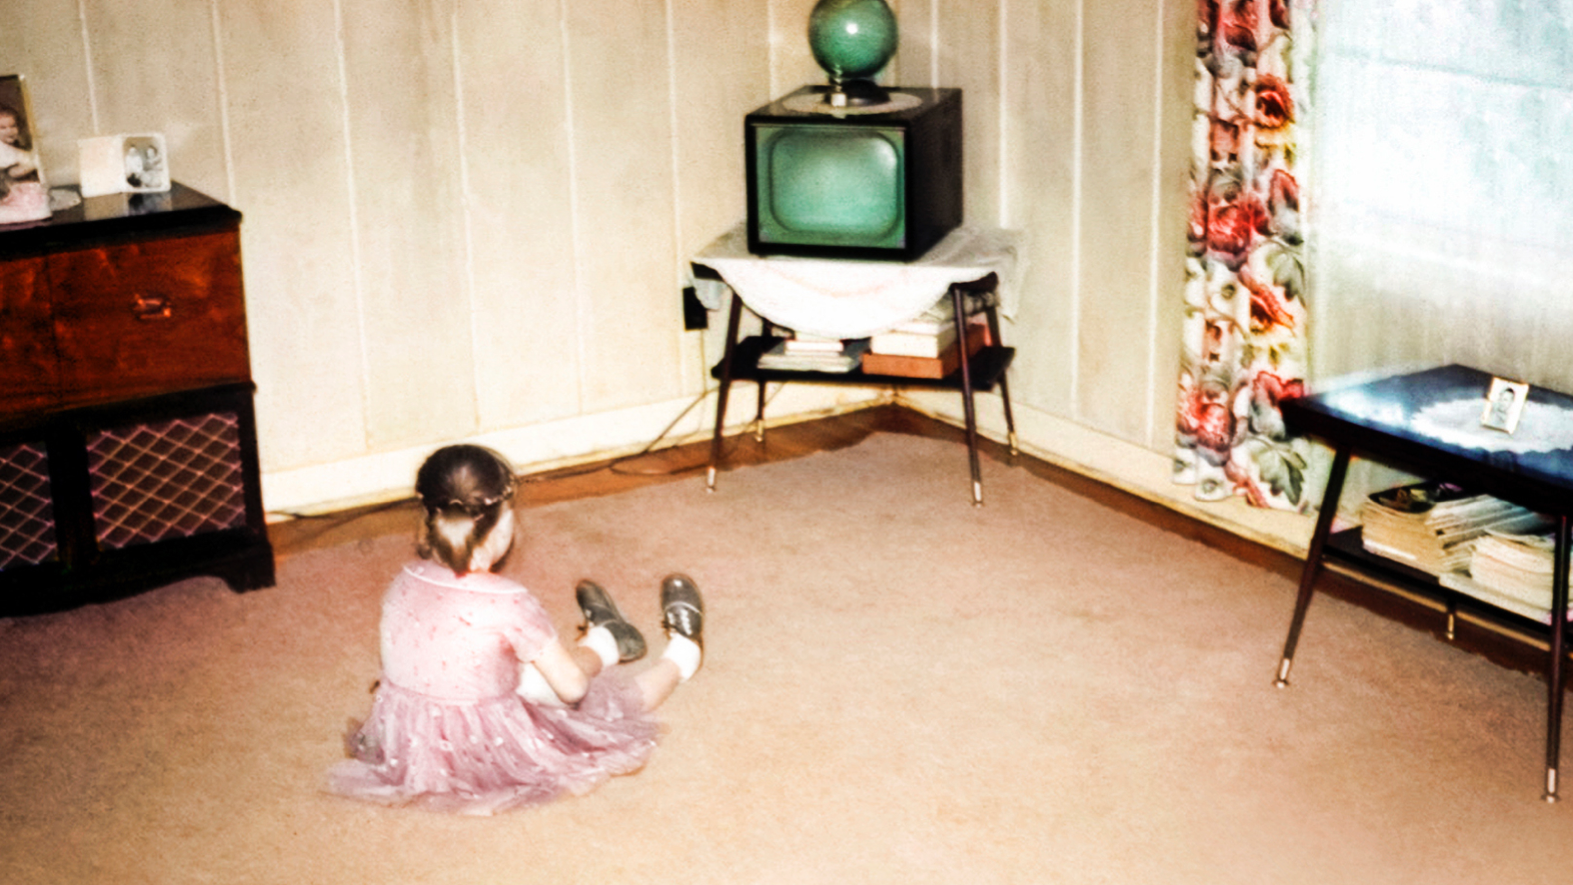 5 Terrifying British Kids TV Shows They Actually Let Children Watch